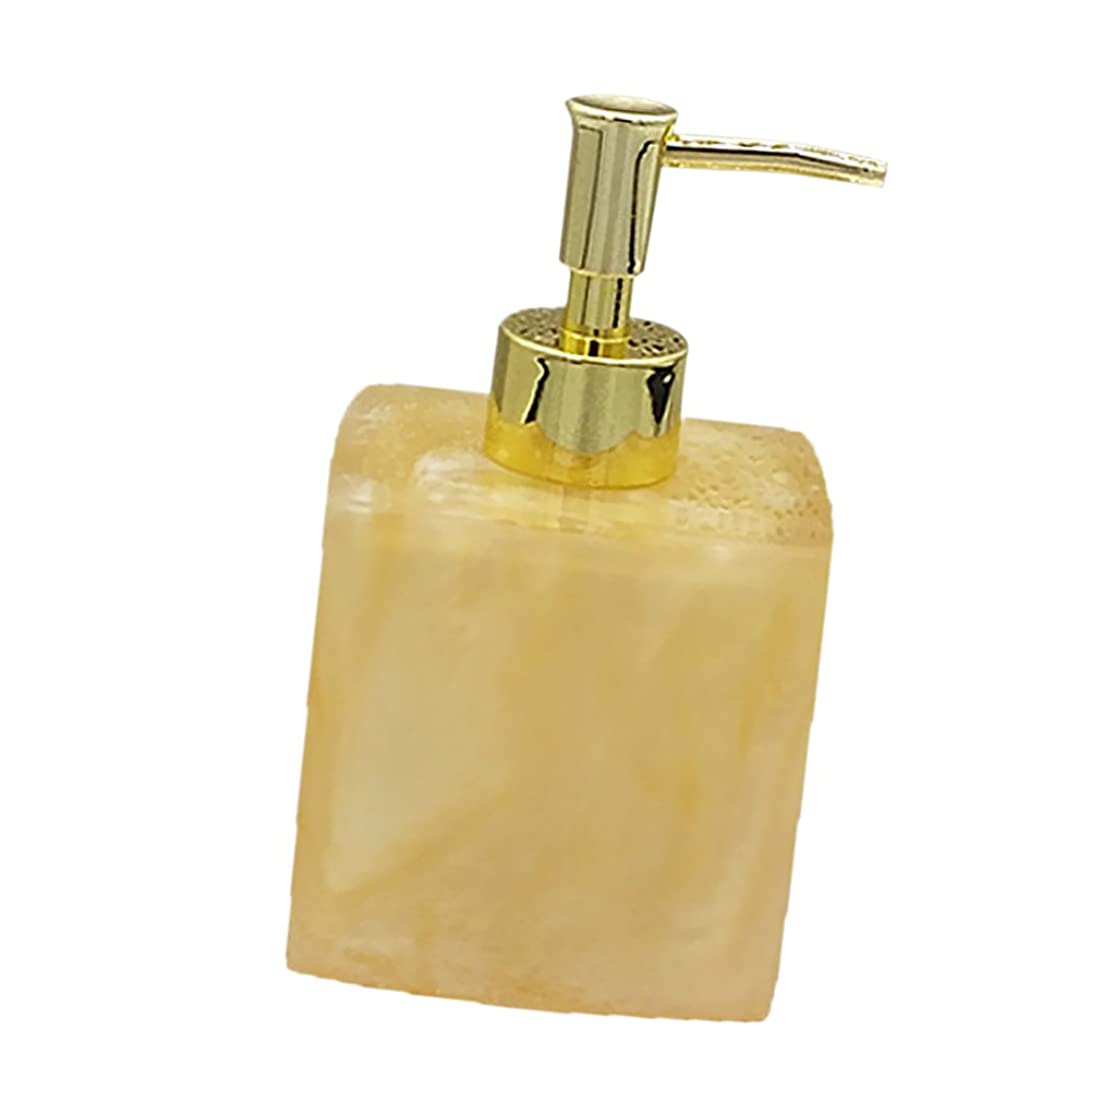 穀物許さないトムオードリース(8.5 7.8 15cm, Yellow) - MonkeyJack Resin Soap Shampoo Dispenser Bath Liquid Body Lotion Pump Bottle/Jar VARIOUS - Yellow, 8.5 7.8 15cm